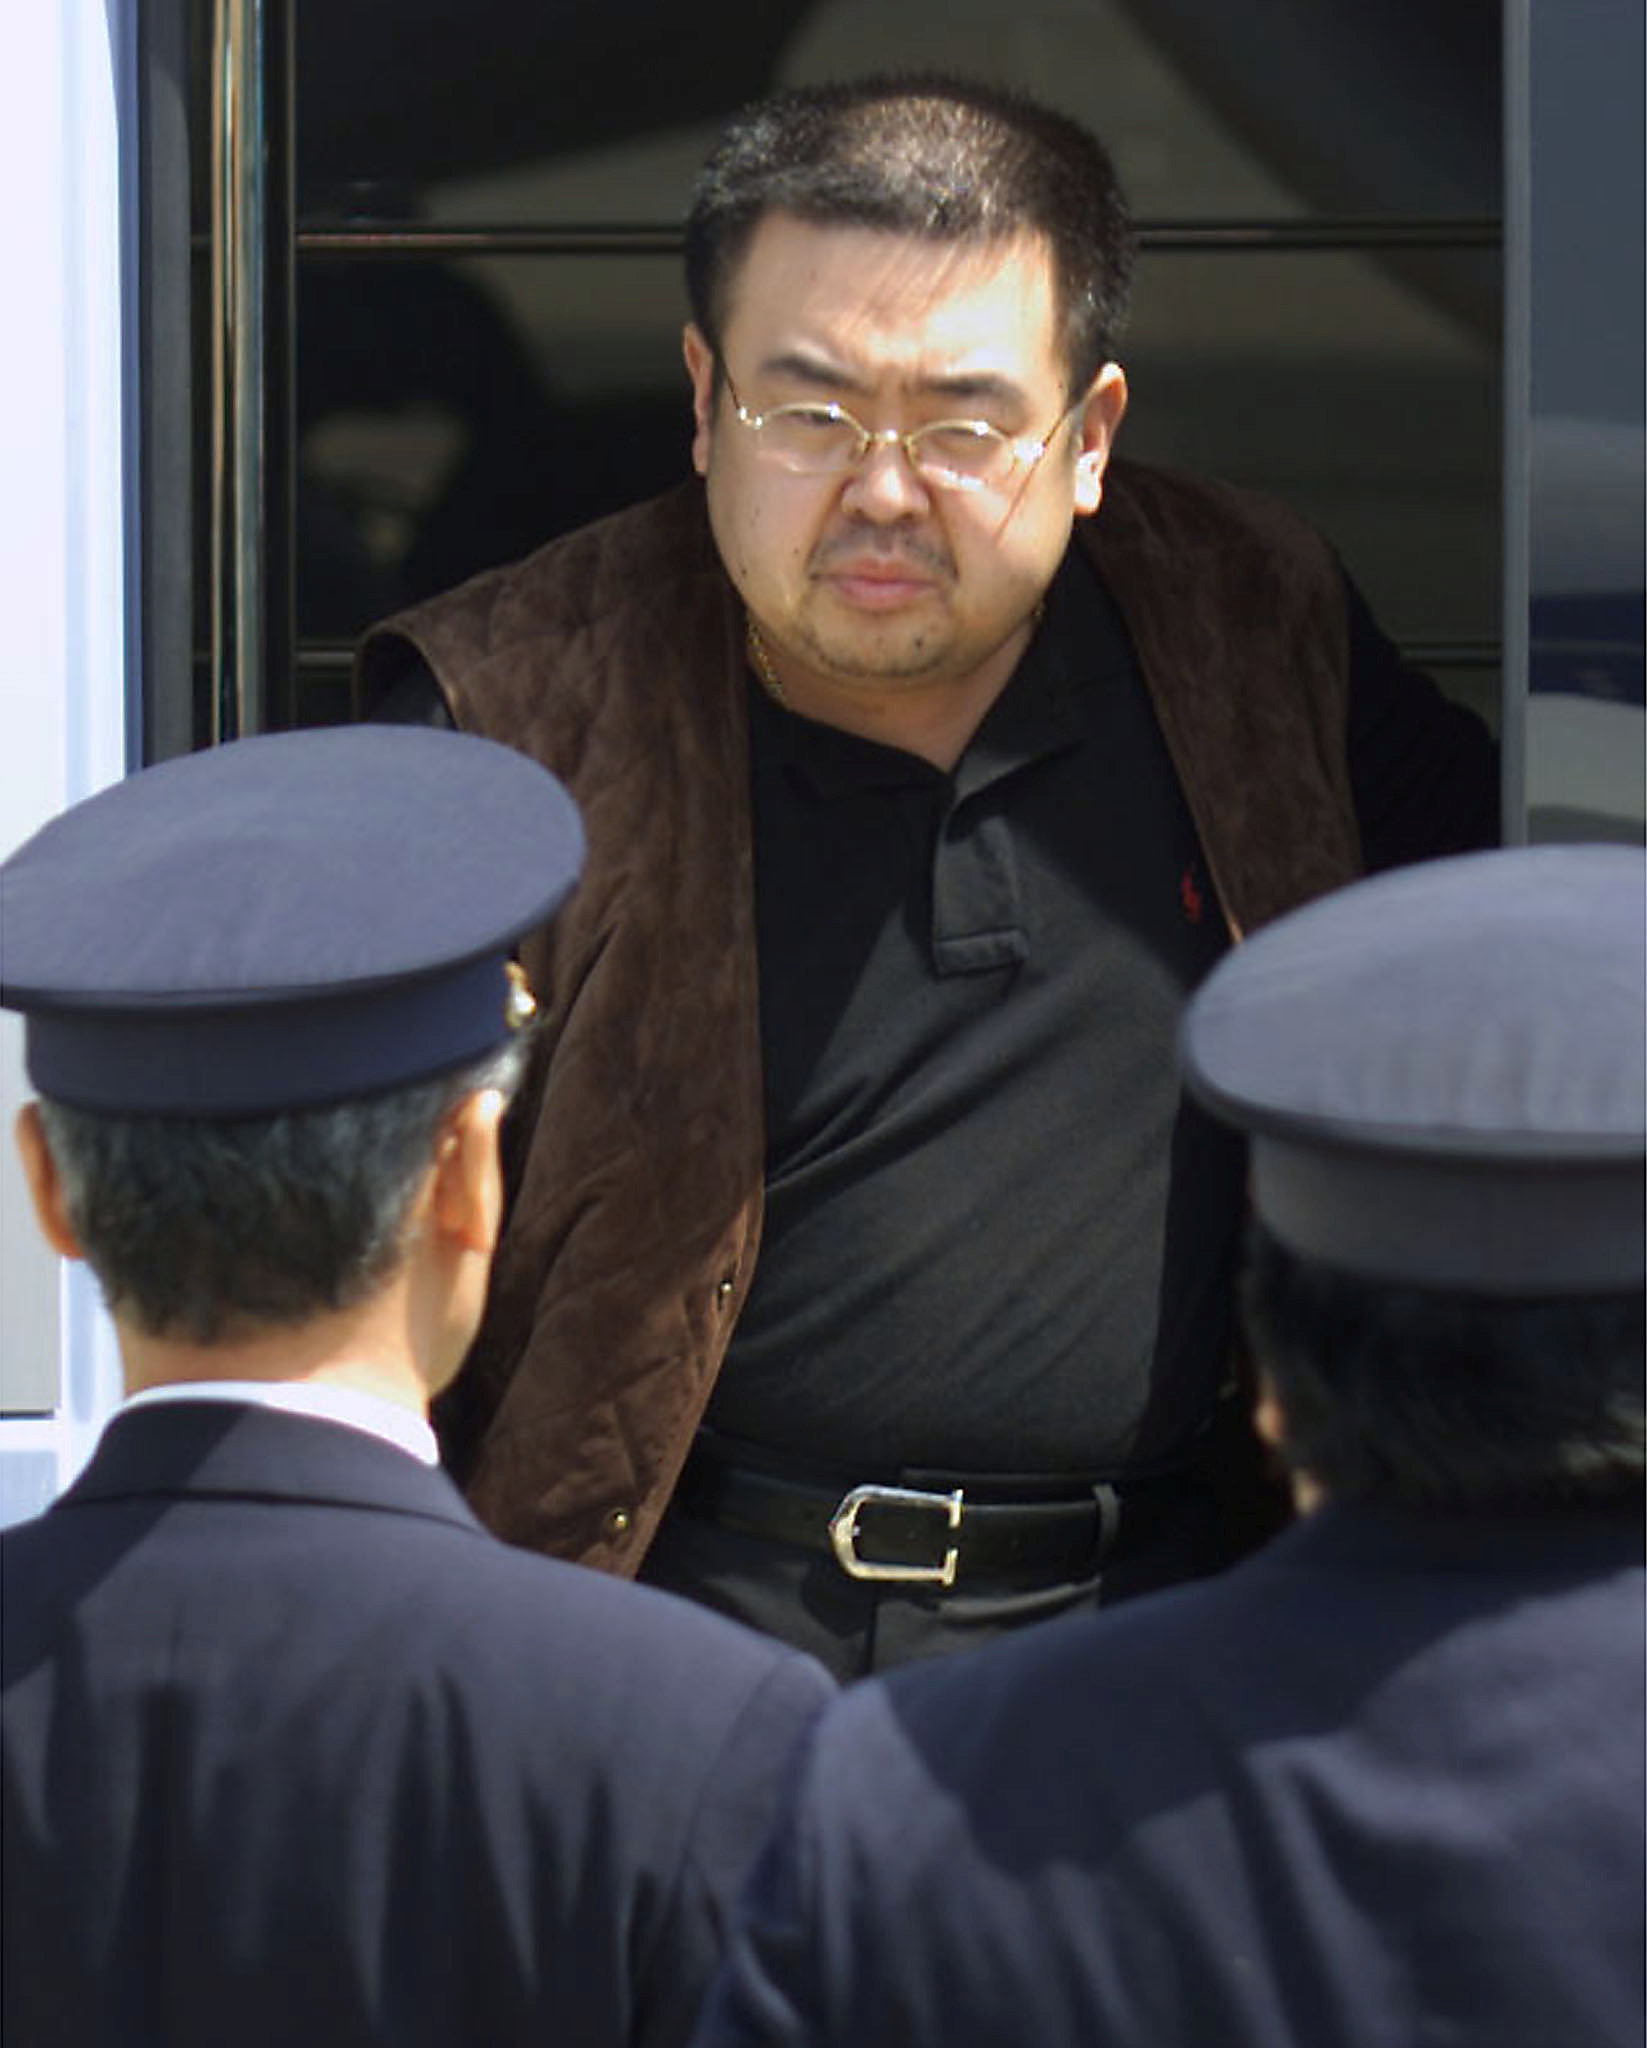 Kim Jong-Nam was deported from Japan after he was caught using a fake passport.